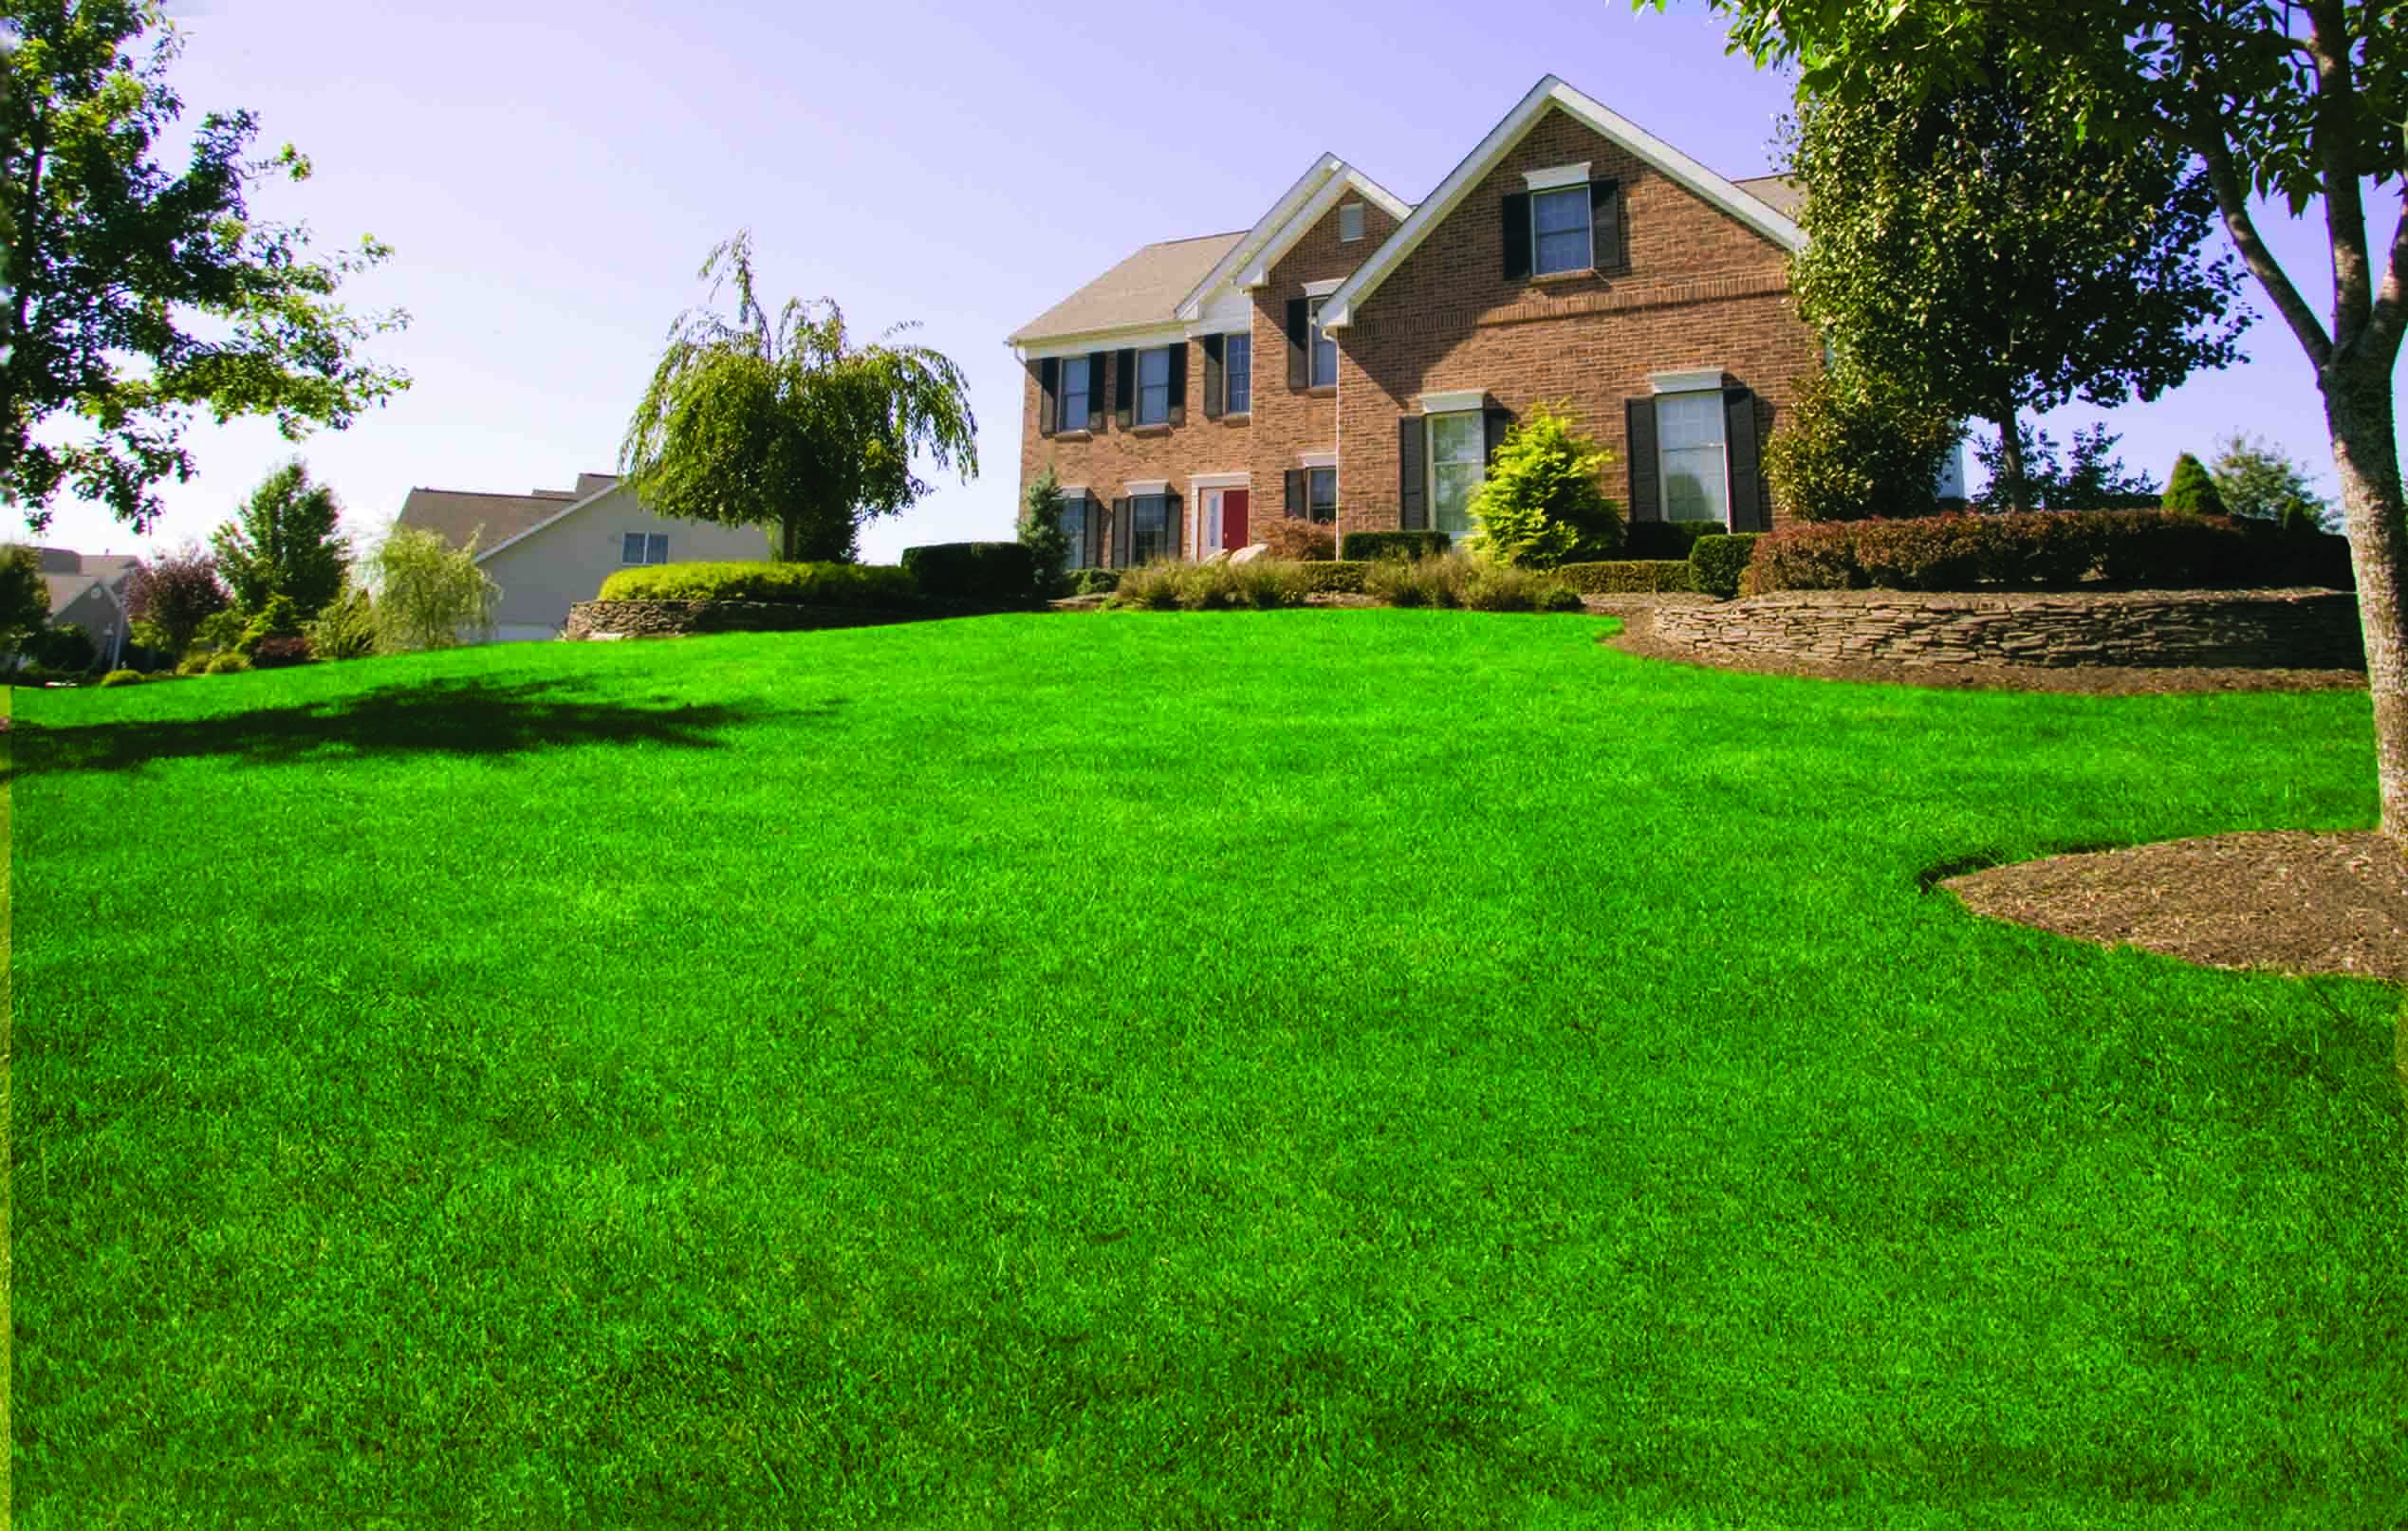 Lawn Care Service Maintenance Lawn Doctor Official Site Lawn Care Lawn Beautiful Homes